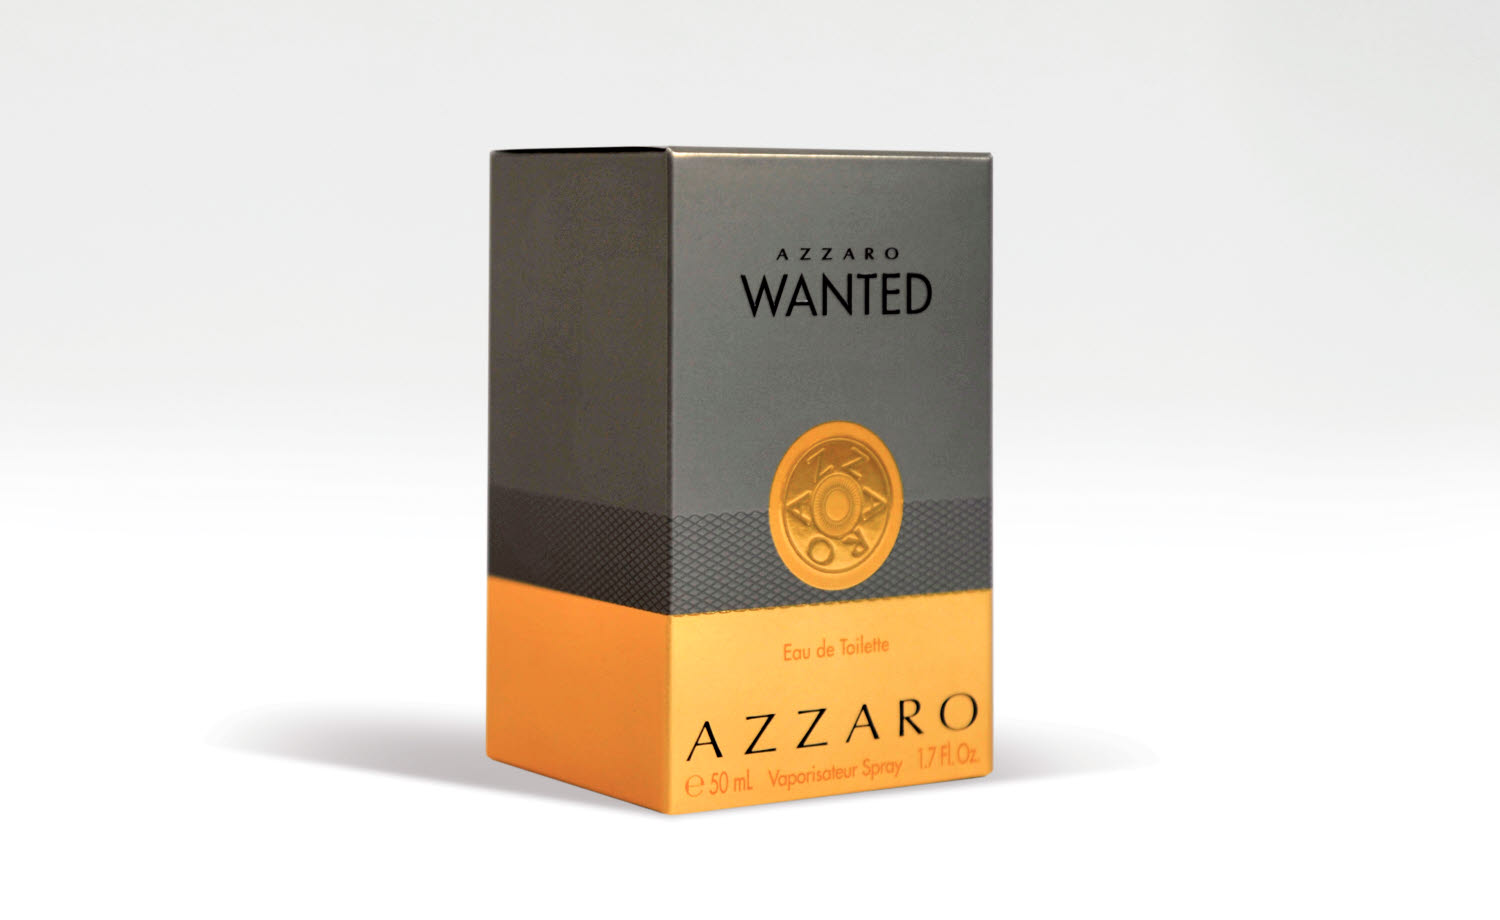 clarins azzaro wanted packaging